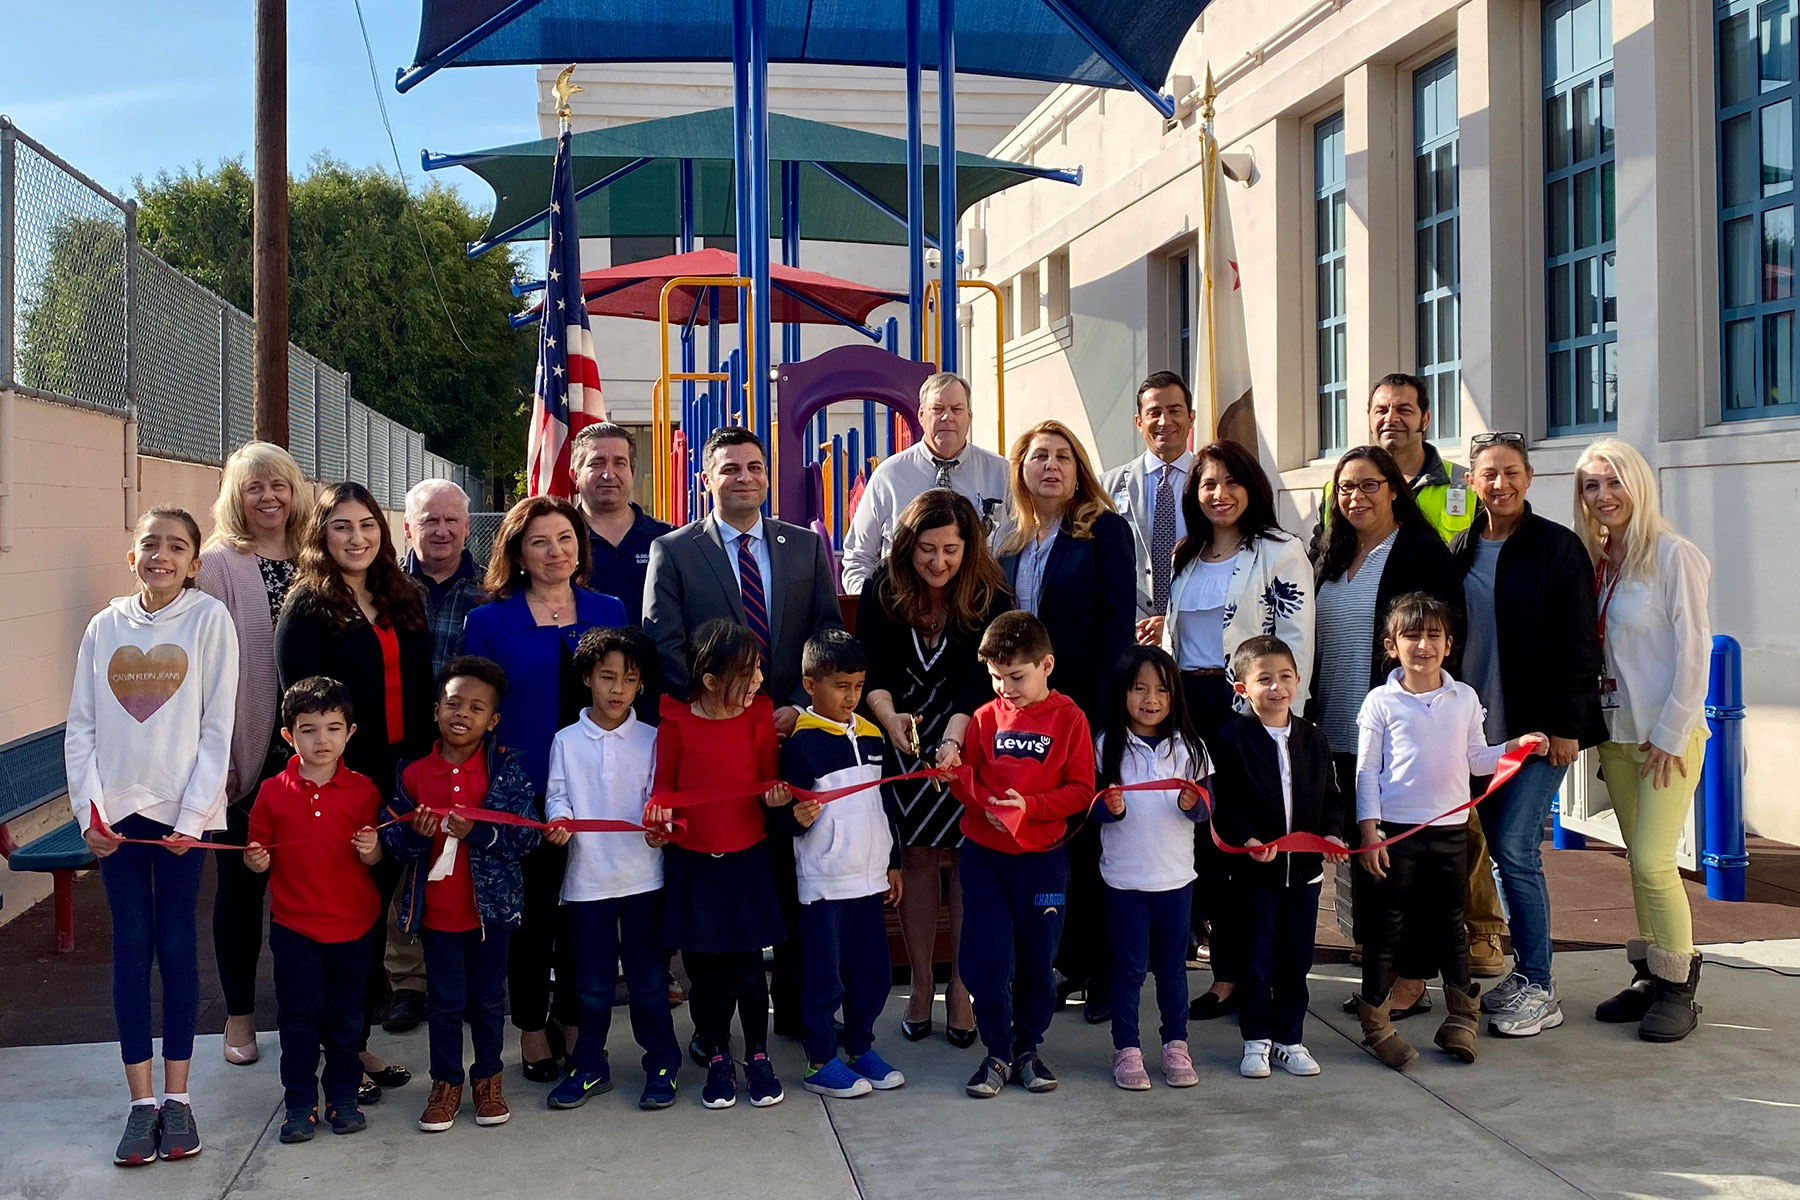 Marshall Elementary School Playground Ribbon Cutting Ceremony